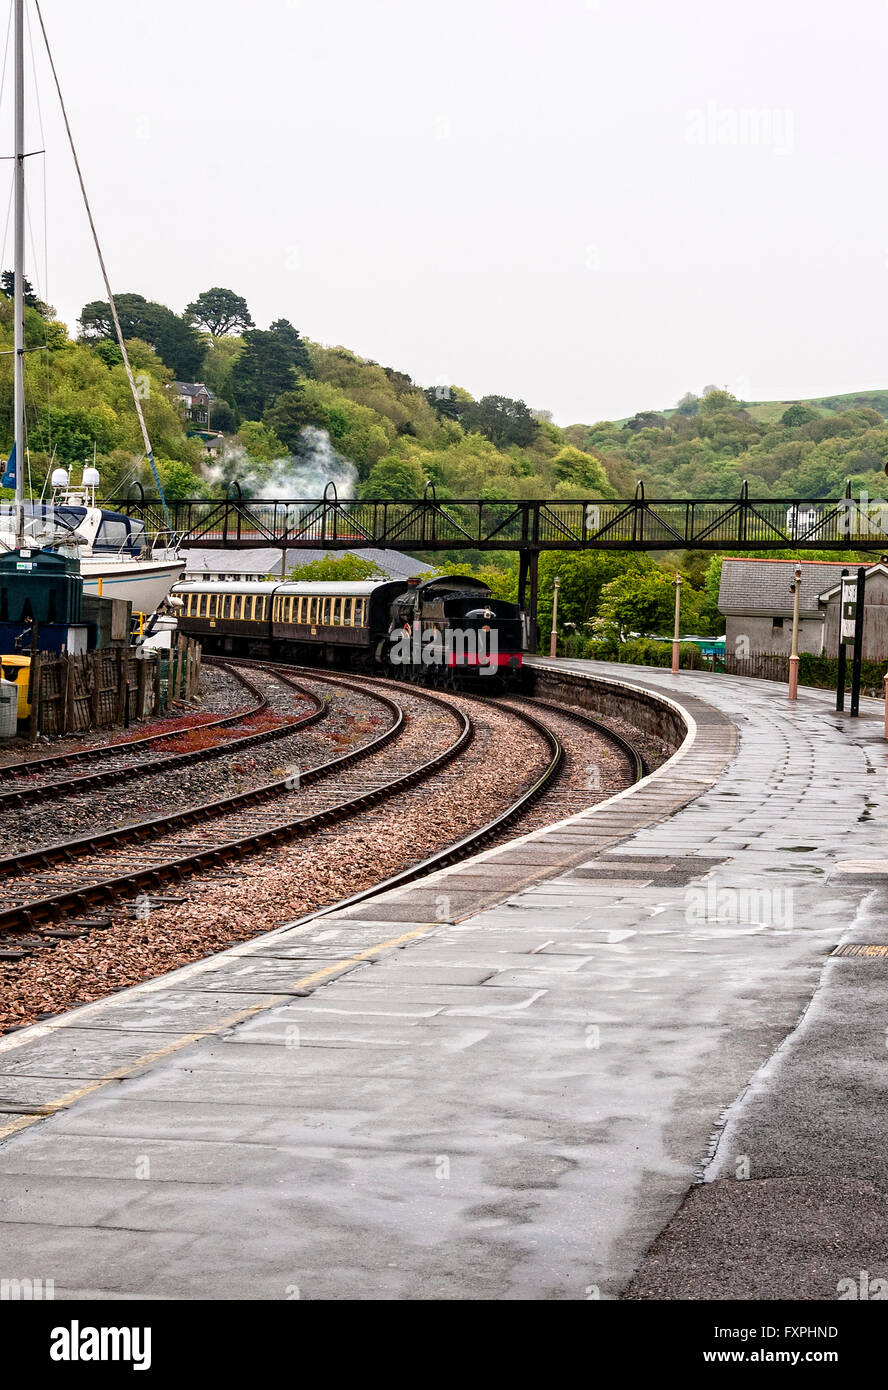 The restored passenger train Lydham Manor gleams as it hauls coaches around a bend alongside the platform of Kingswear - Stock Image